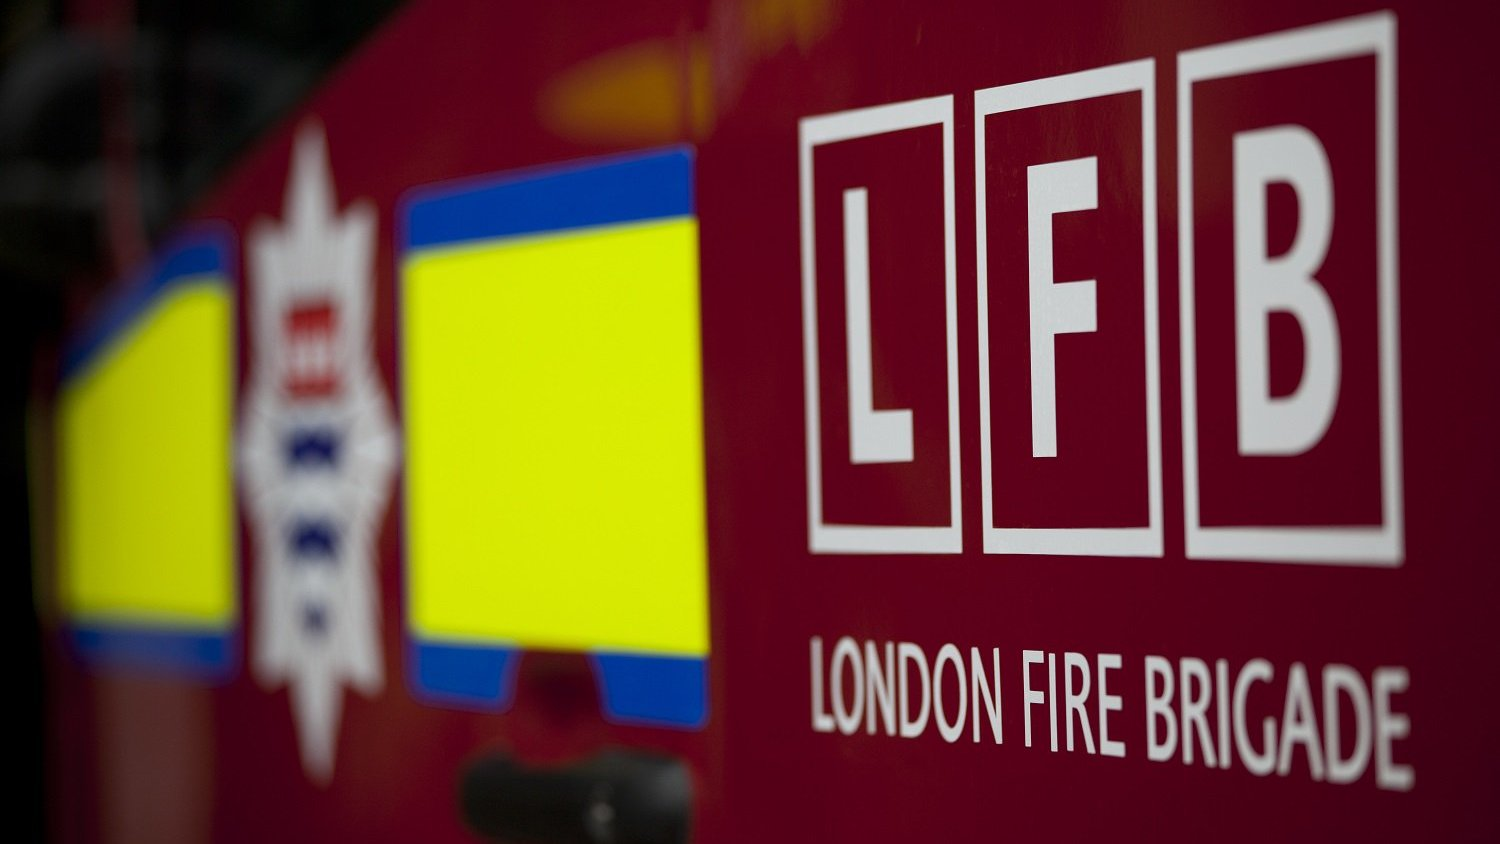 Body found after fire at Ladbroke Grove flats